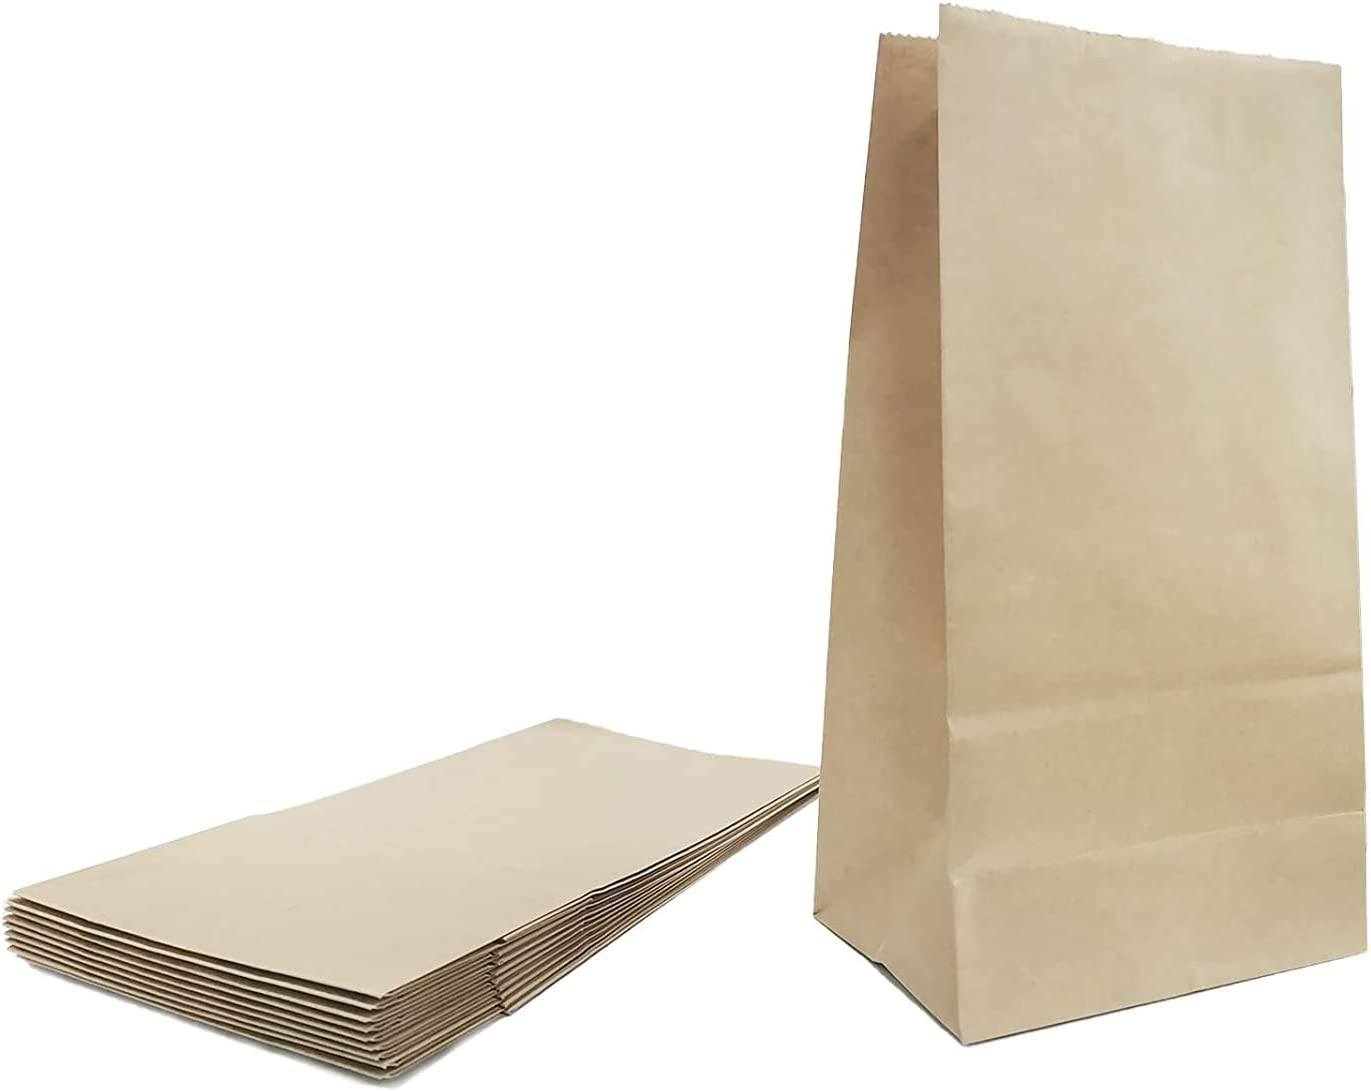 10Pcs Brown Paper Lunch Bags ,4 LB Capacity Paper Lunch Bags,Use for Baking Shops,Coffee Shops,Milk Tea Shops,Gift Shops